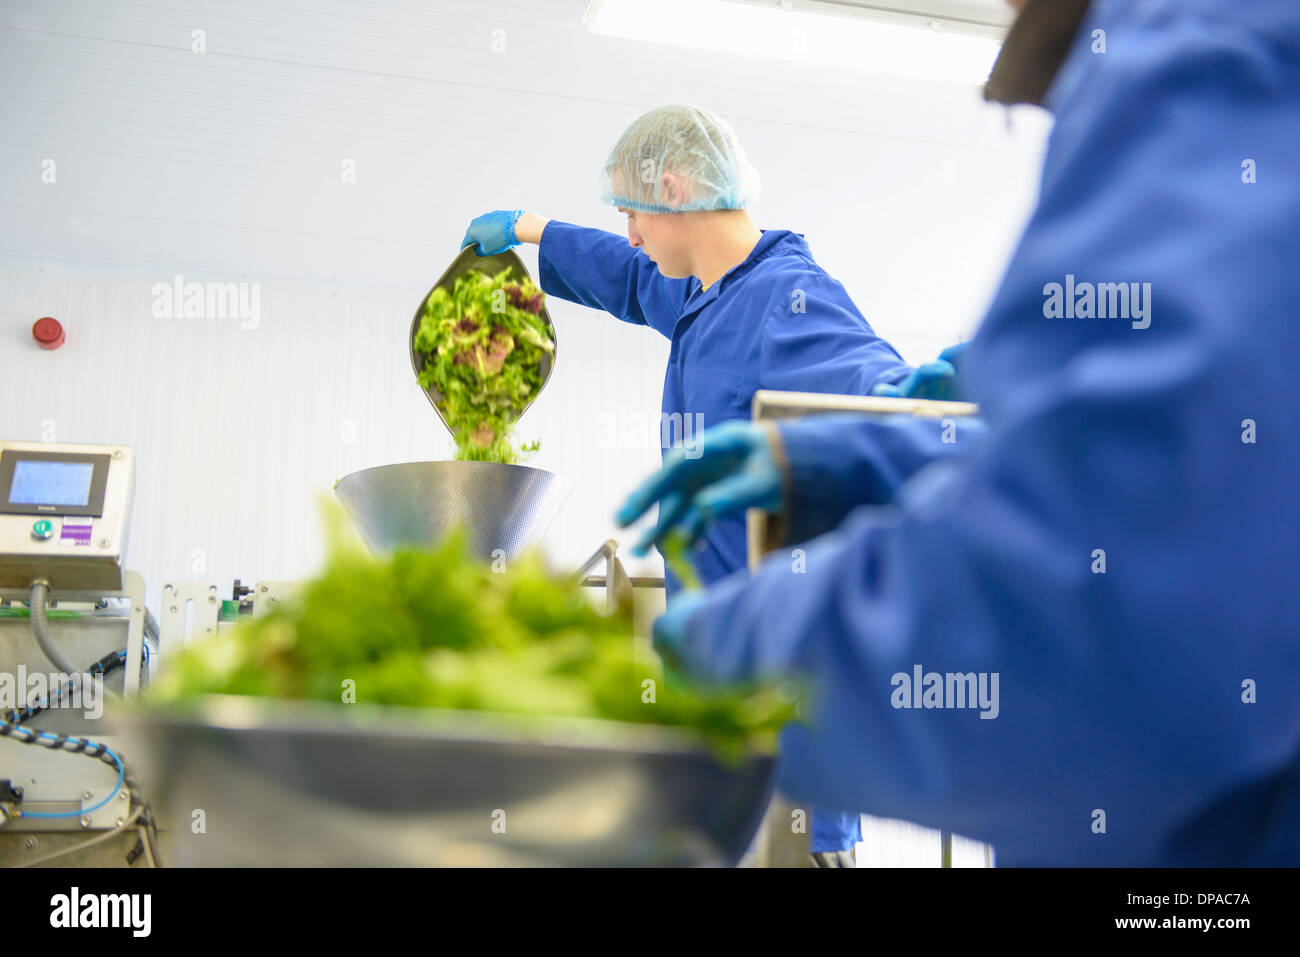 Workers weighing mixed salad leaves Photo Stock